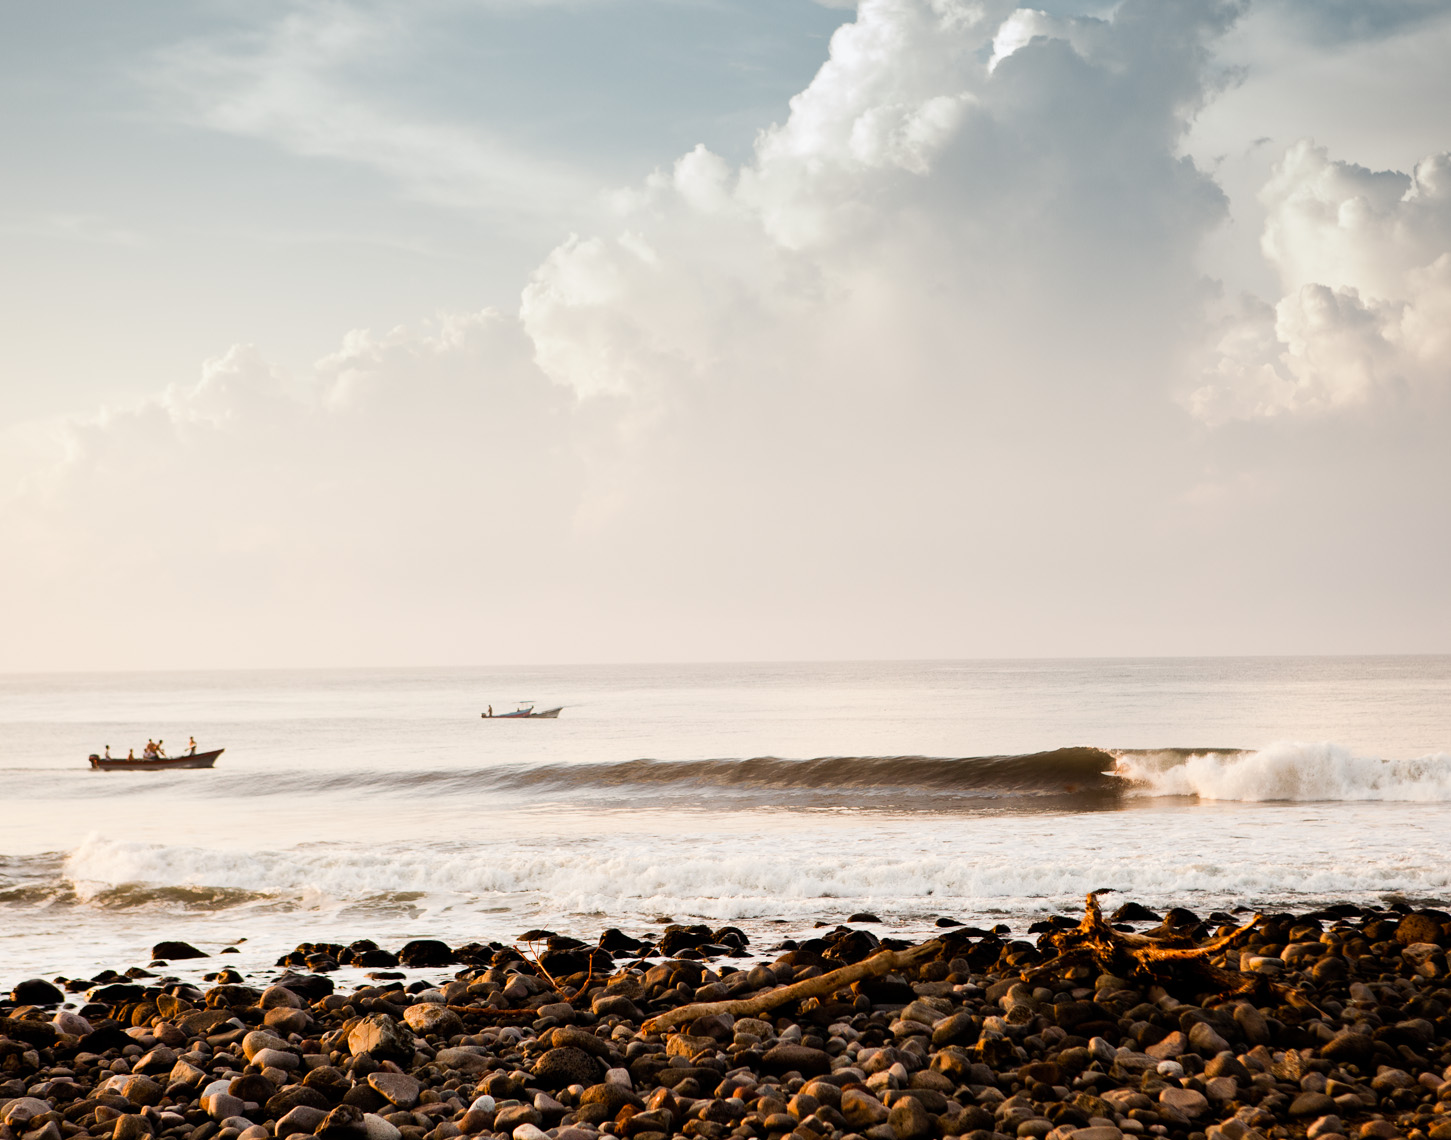 Surfers in perfect wave in El Salvador